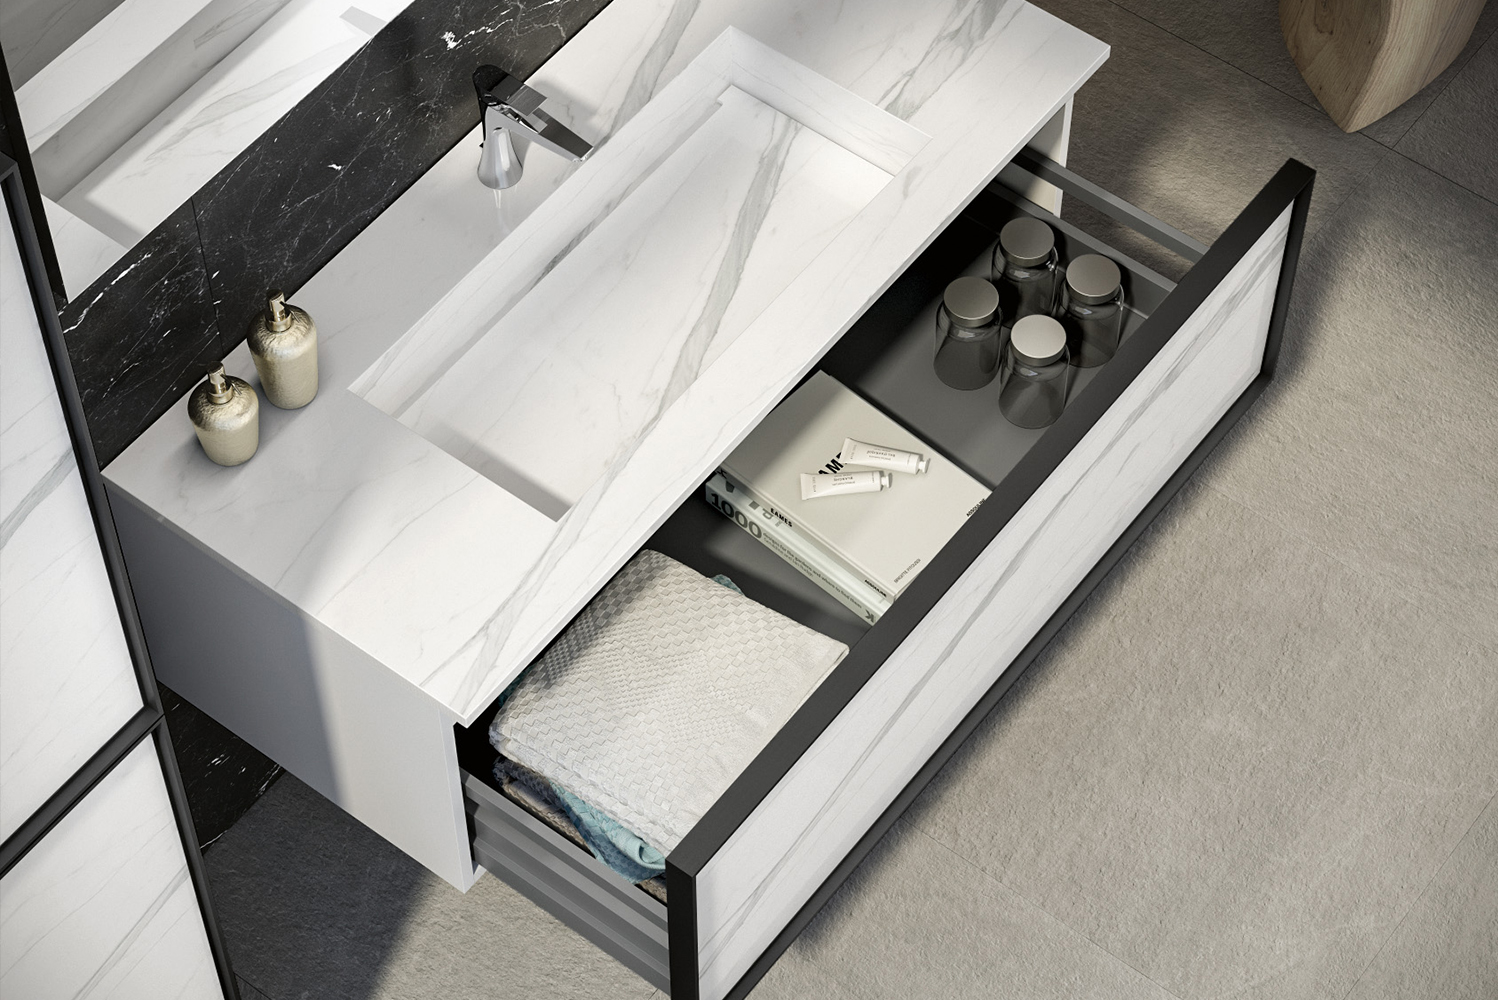 Sink base cabinets come with the option of one or two drawers and a choice of four sizes, while side cabinets offer the same drawer options and five different sizes.